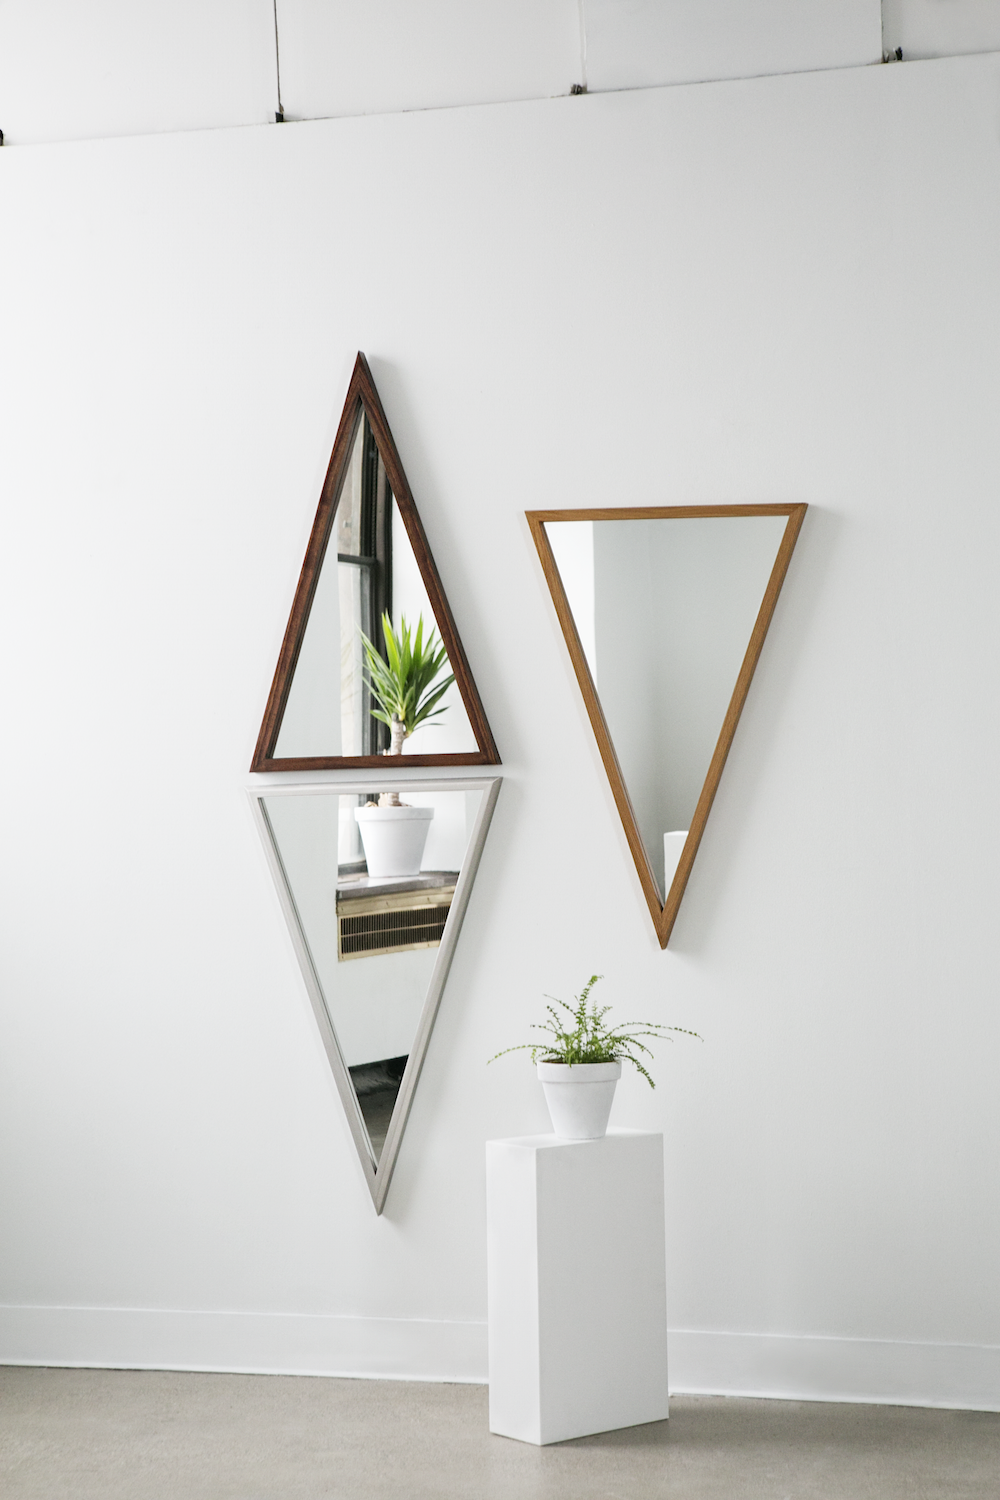 'ISOSCELES' MIRRORS. Photo by Heather Saunders. Styling by NEXT:SPACE.